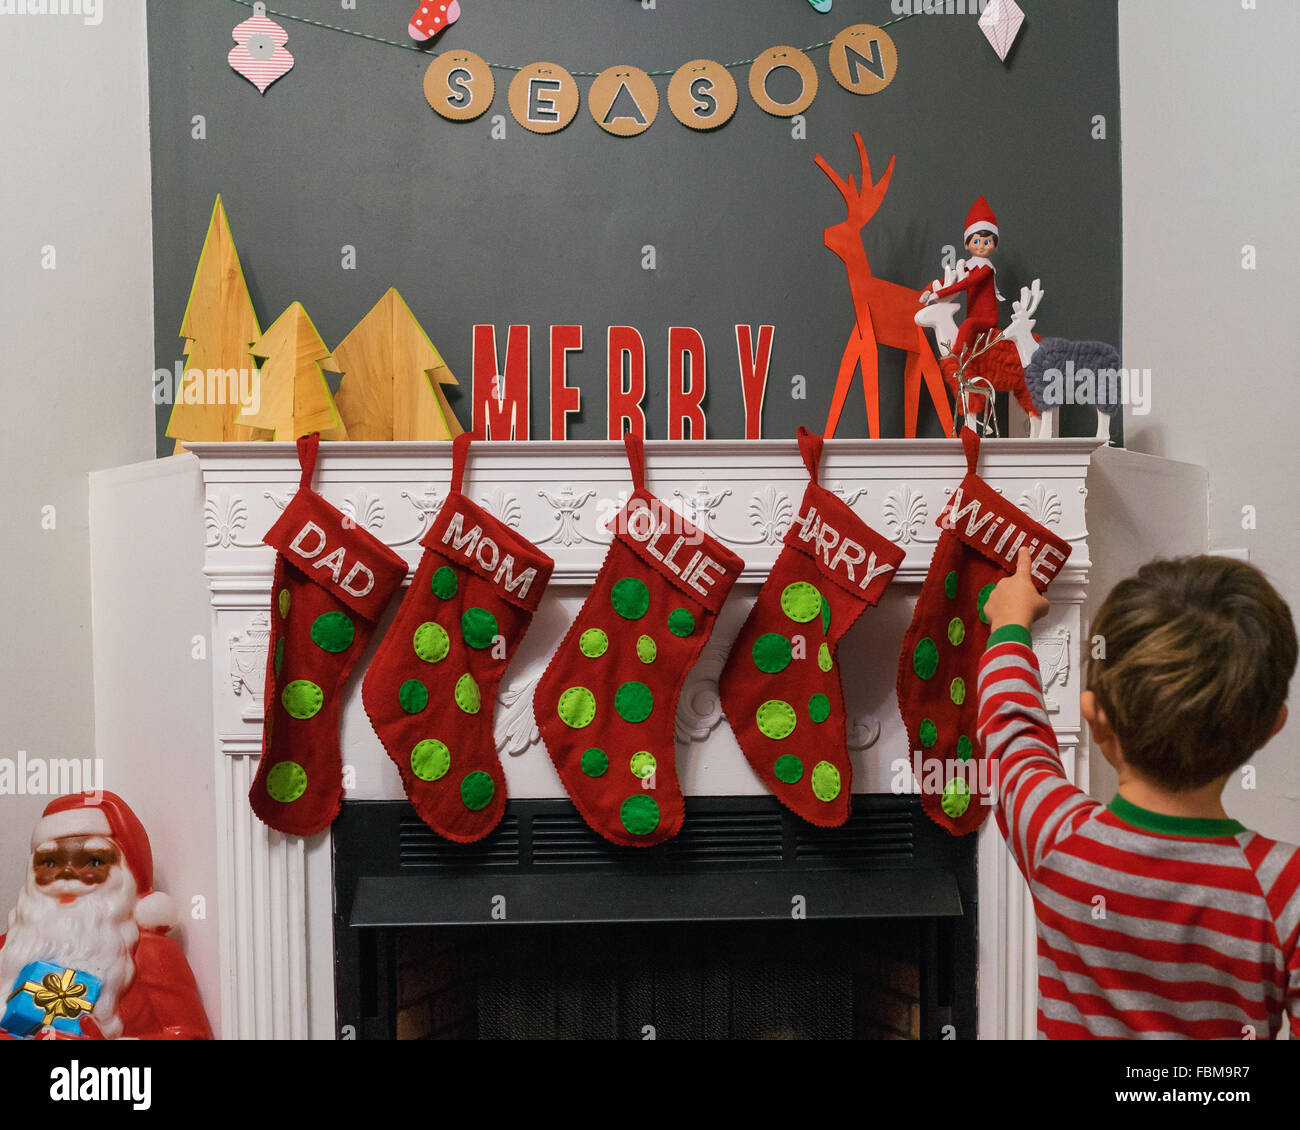 Boy Standing In Front Of Fireplace Pointing At Christmas Stockings